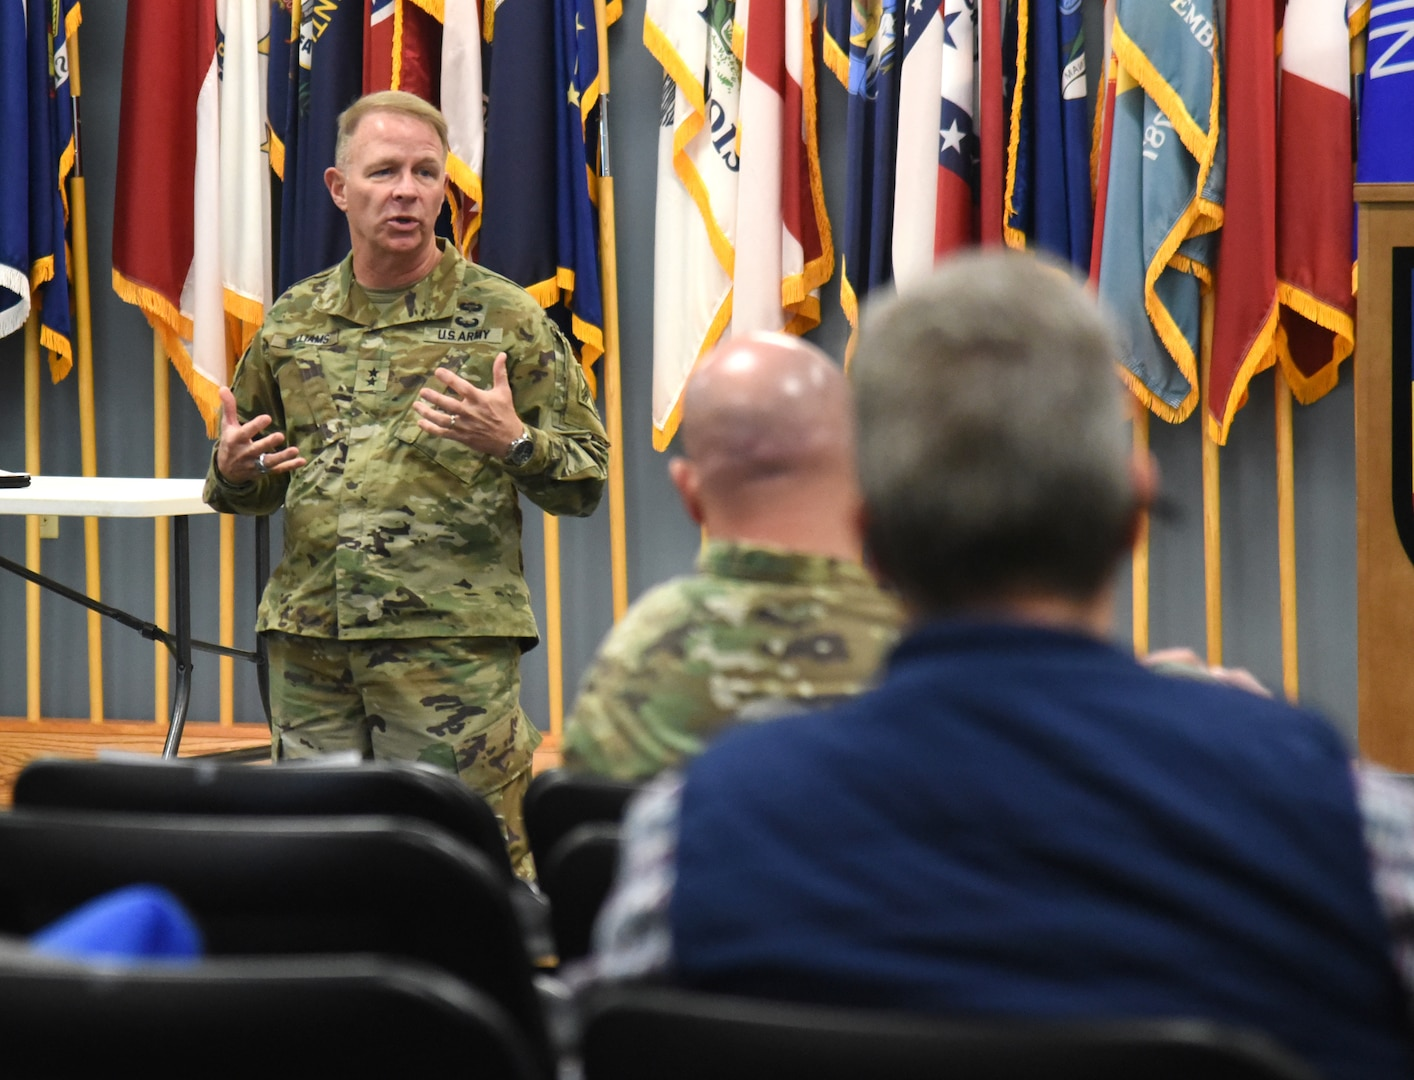 Maj. Gen. Timothy P. Williams, the Adjutant General of Virginia, speaks to Virginia Department of Military Affairs managers during the DMA Supervisors Course Dec. 4, 2020, at Fort Pickett, Virginia.